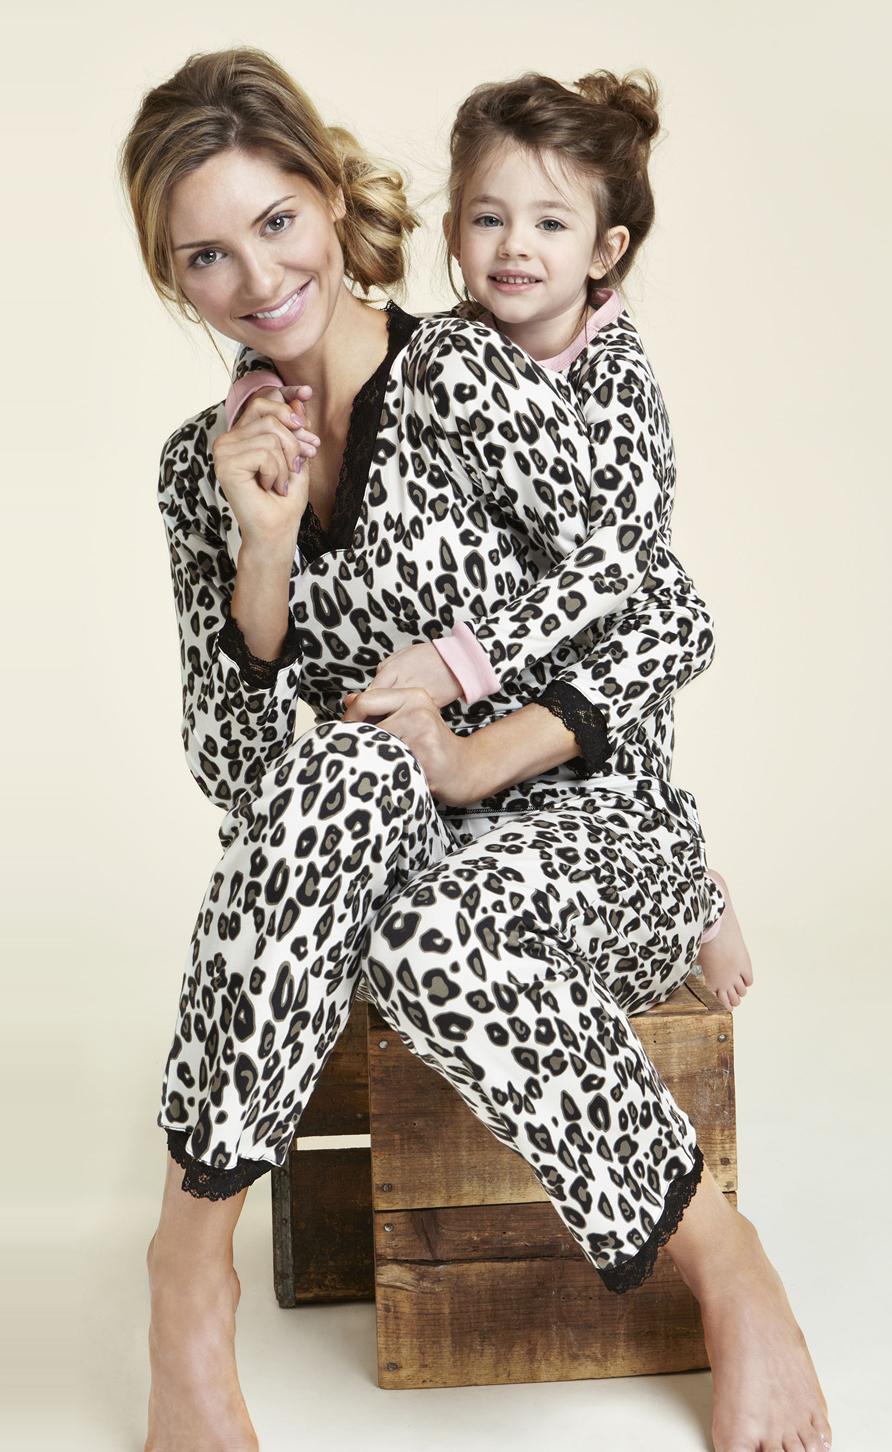 Mother Daughter Matching Pajamas: Adorable and Comfy